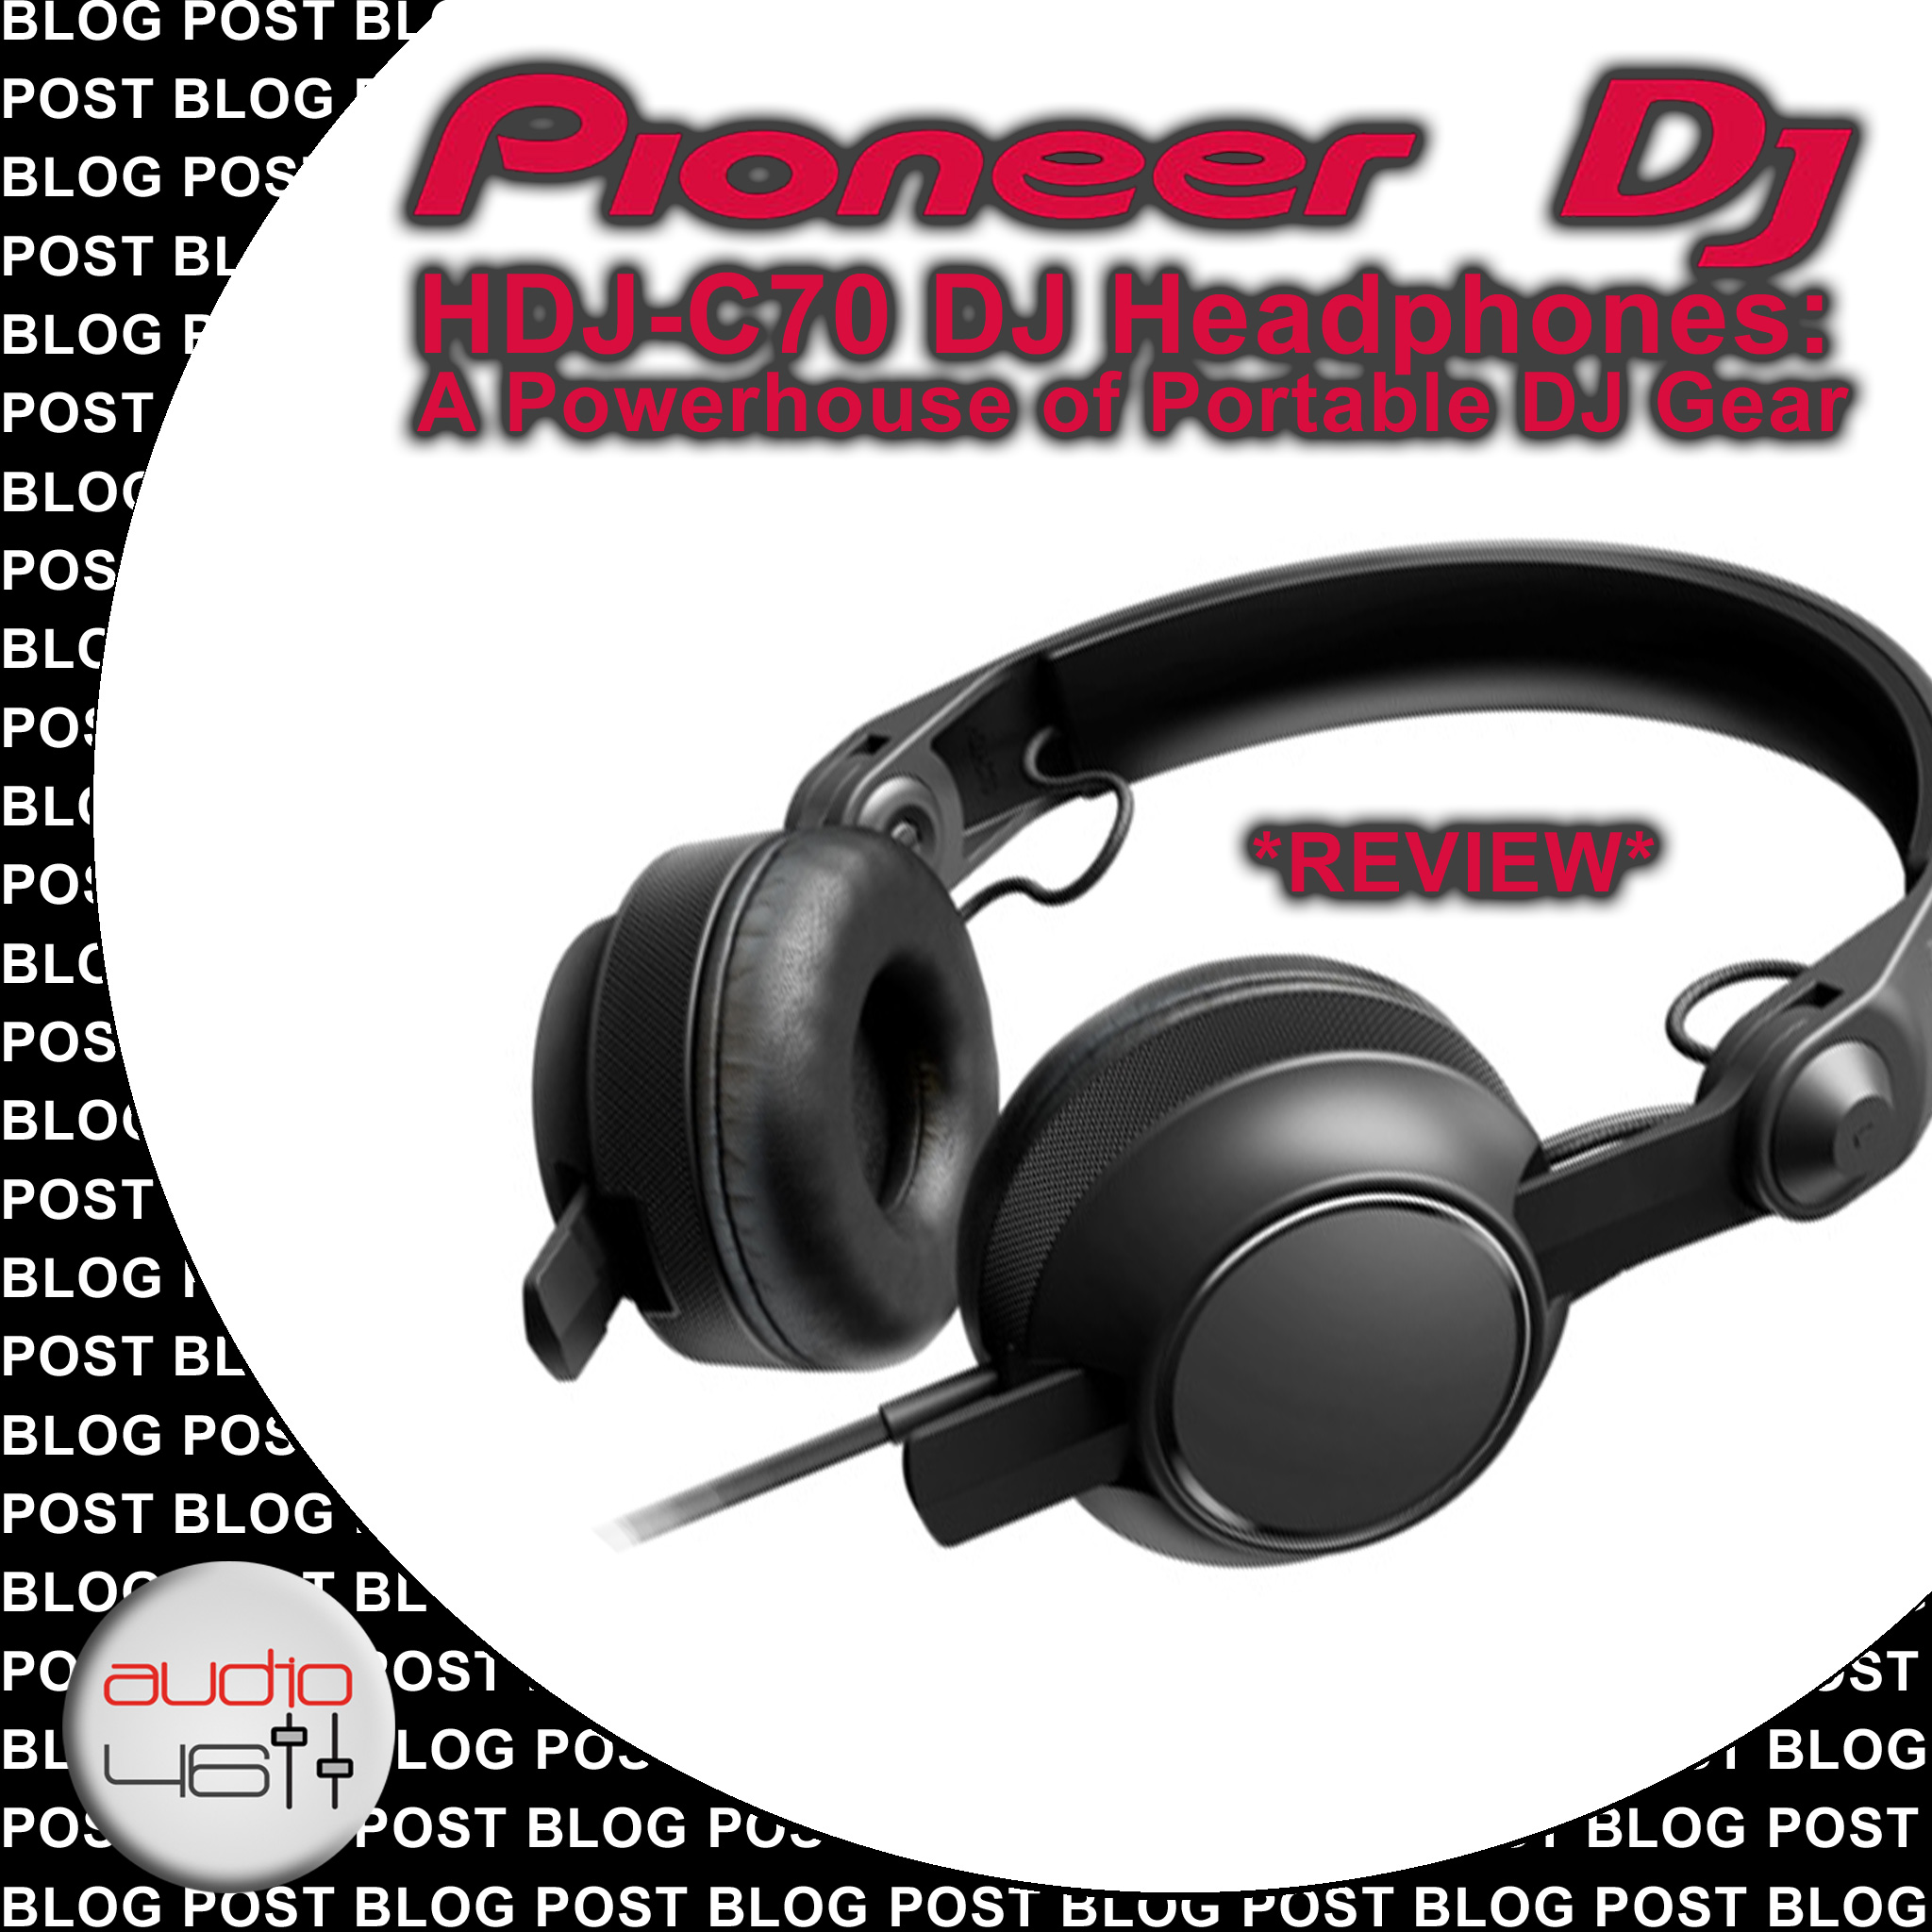 Pioneer HDJ-C70 DJ Headphones: A Powerhouse of Portable DJ Gear